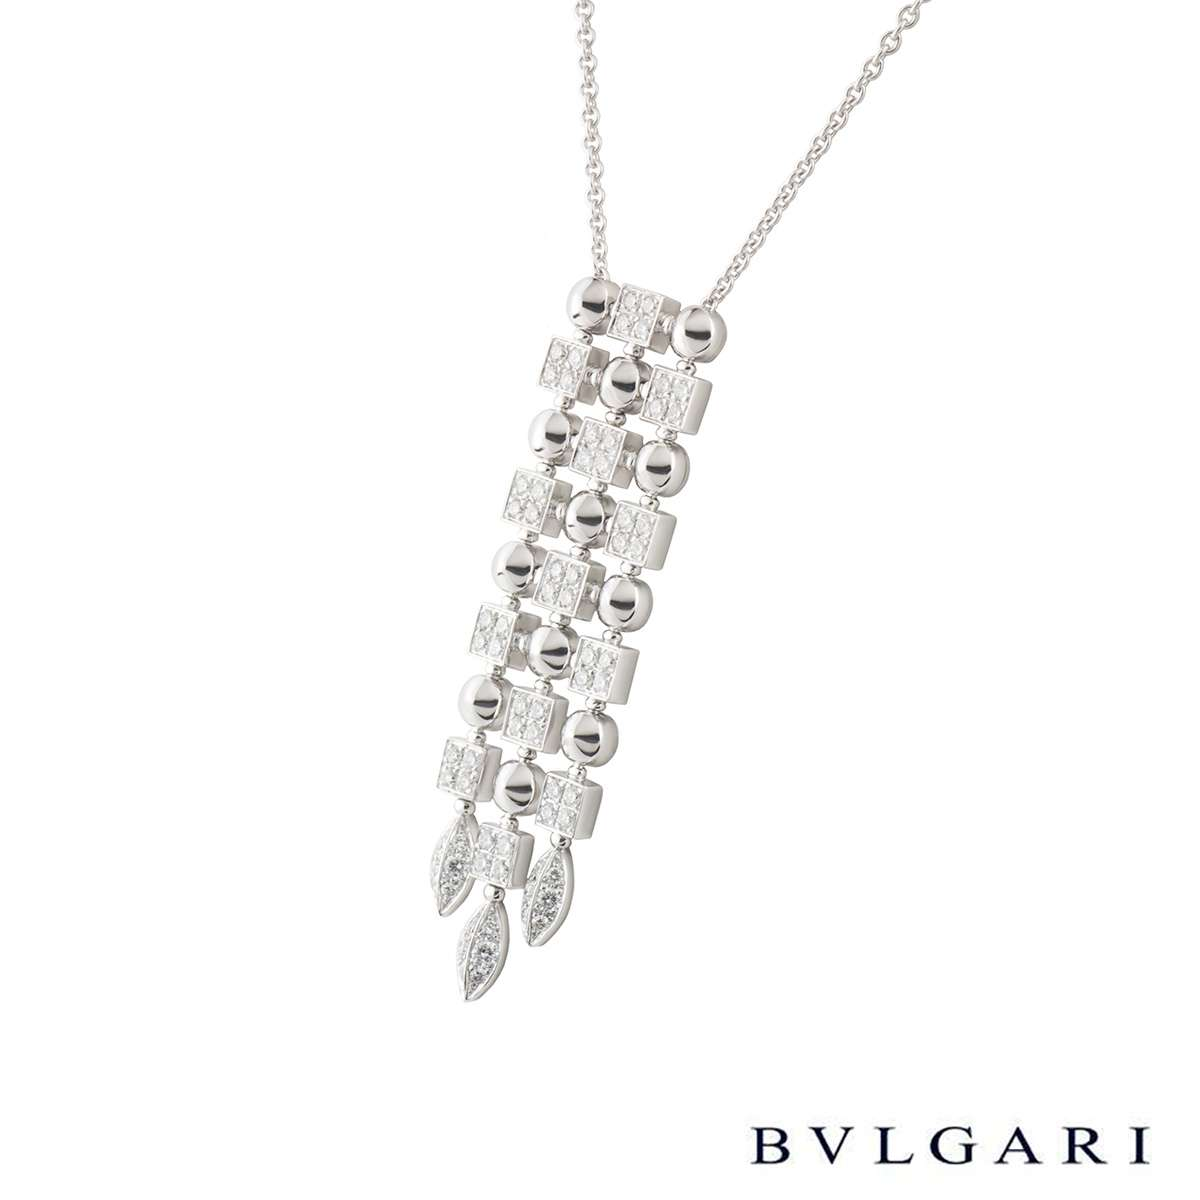 Bvlgari Lucea Diamond Necklace